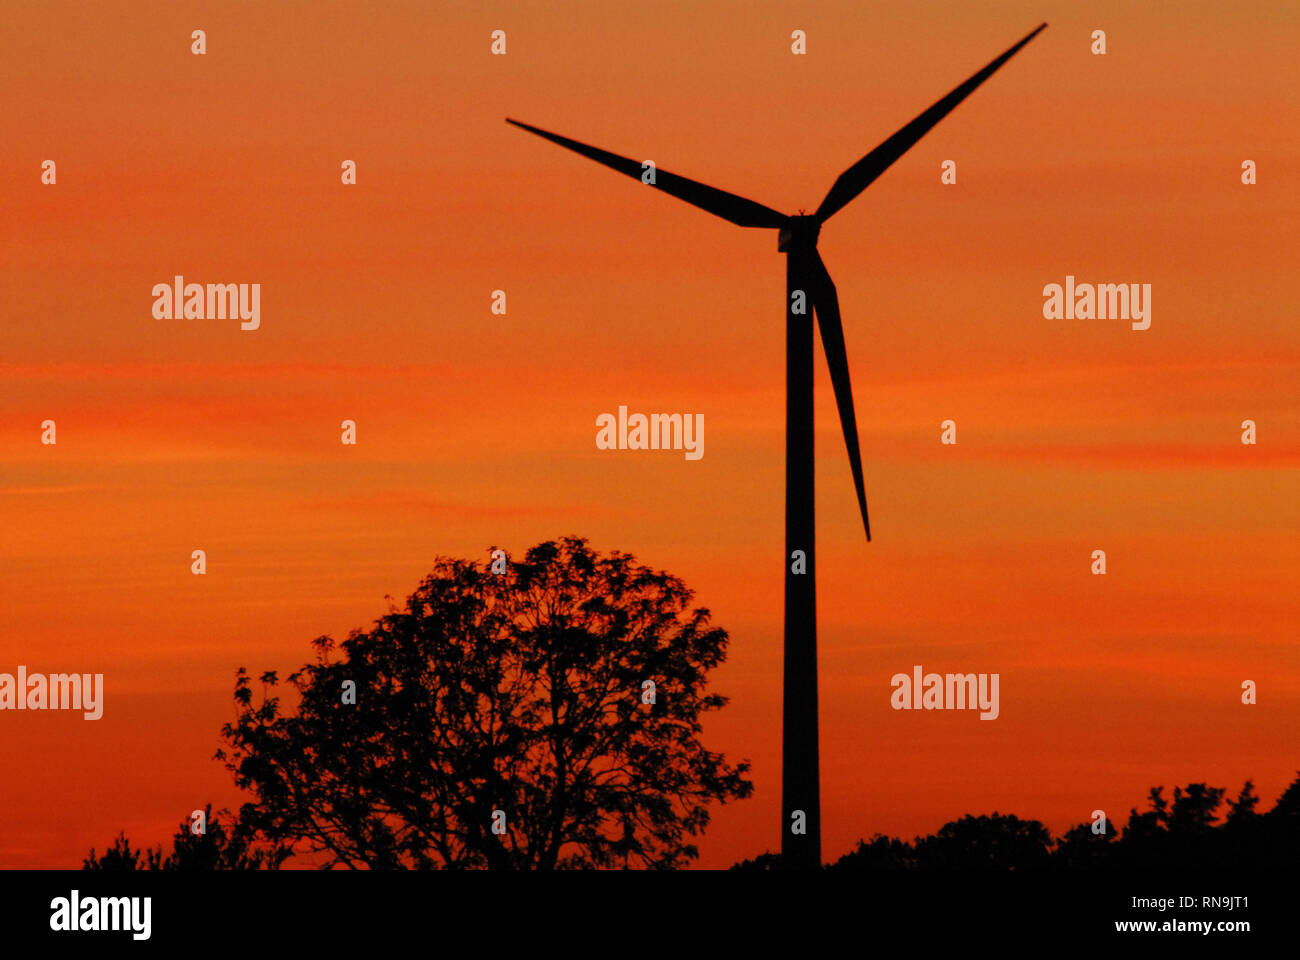 A modern windmill in the dawn of sustainable clean energy.  Photographed in the Swedish countryside.  Please note the ample space for your text. - Stock Image